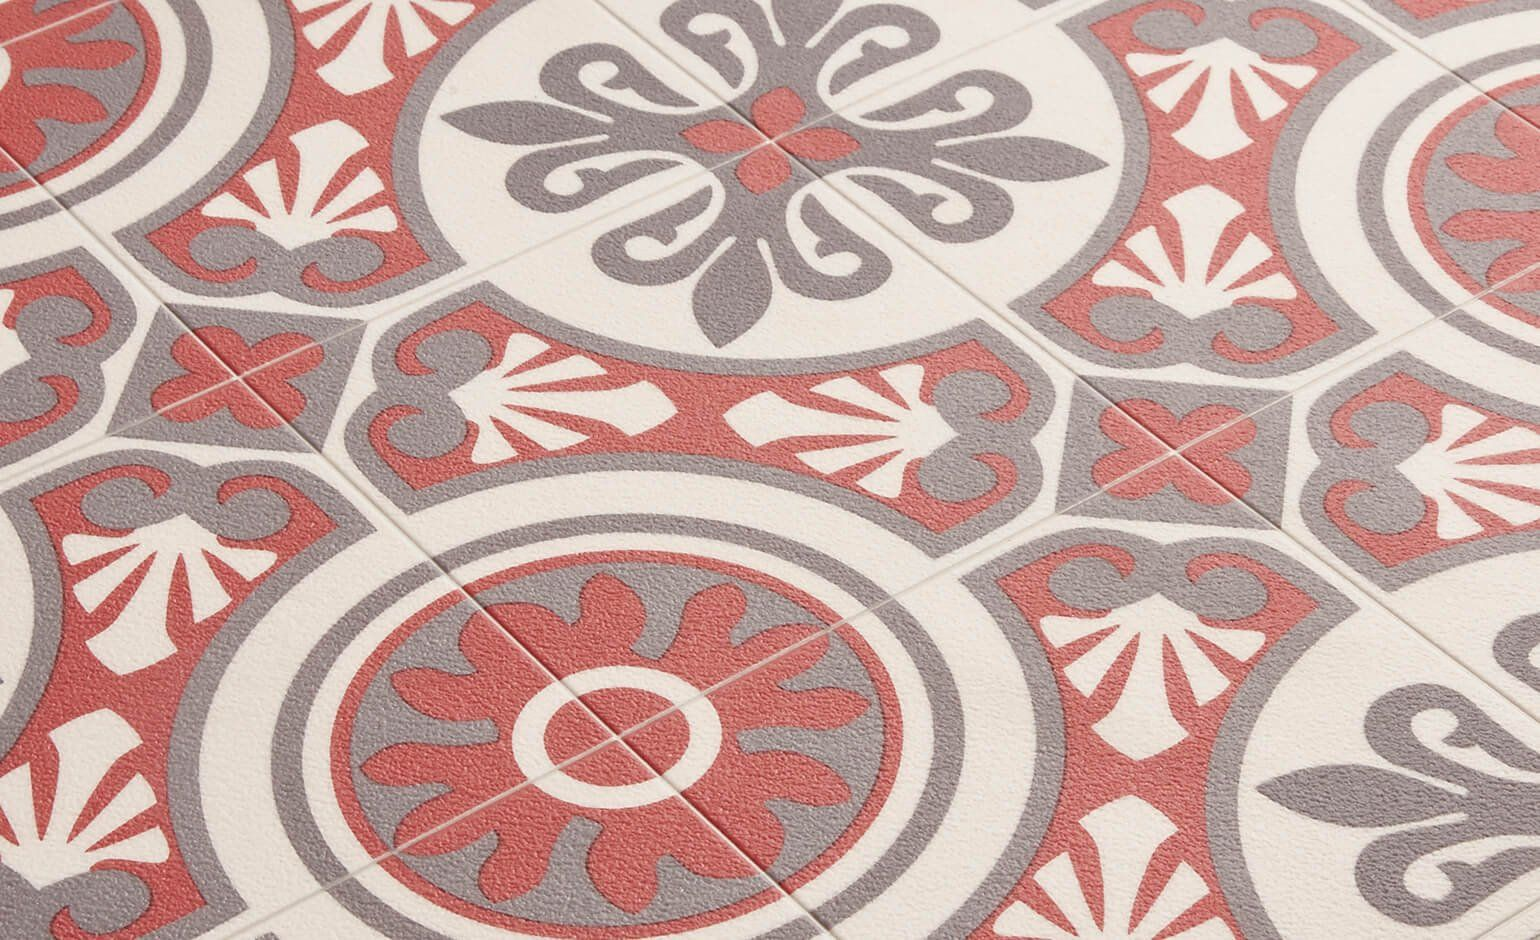 Sol vinyle emotion carreau ciment rouge et gris rouleau for Tapis carreaux de ciment saint maclou